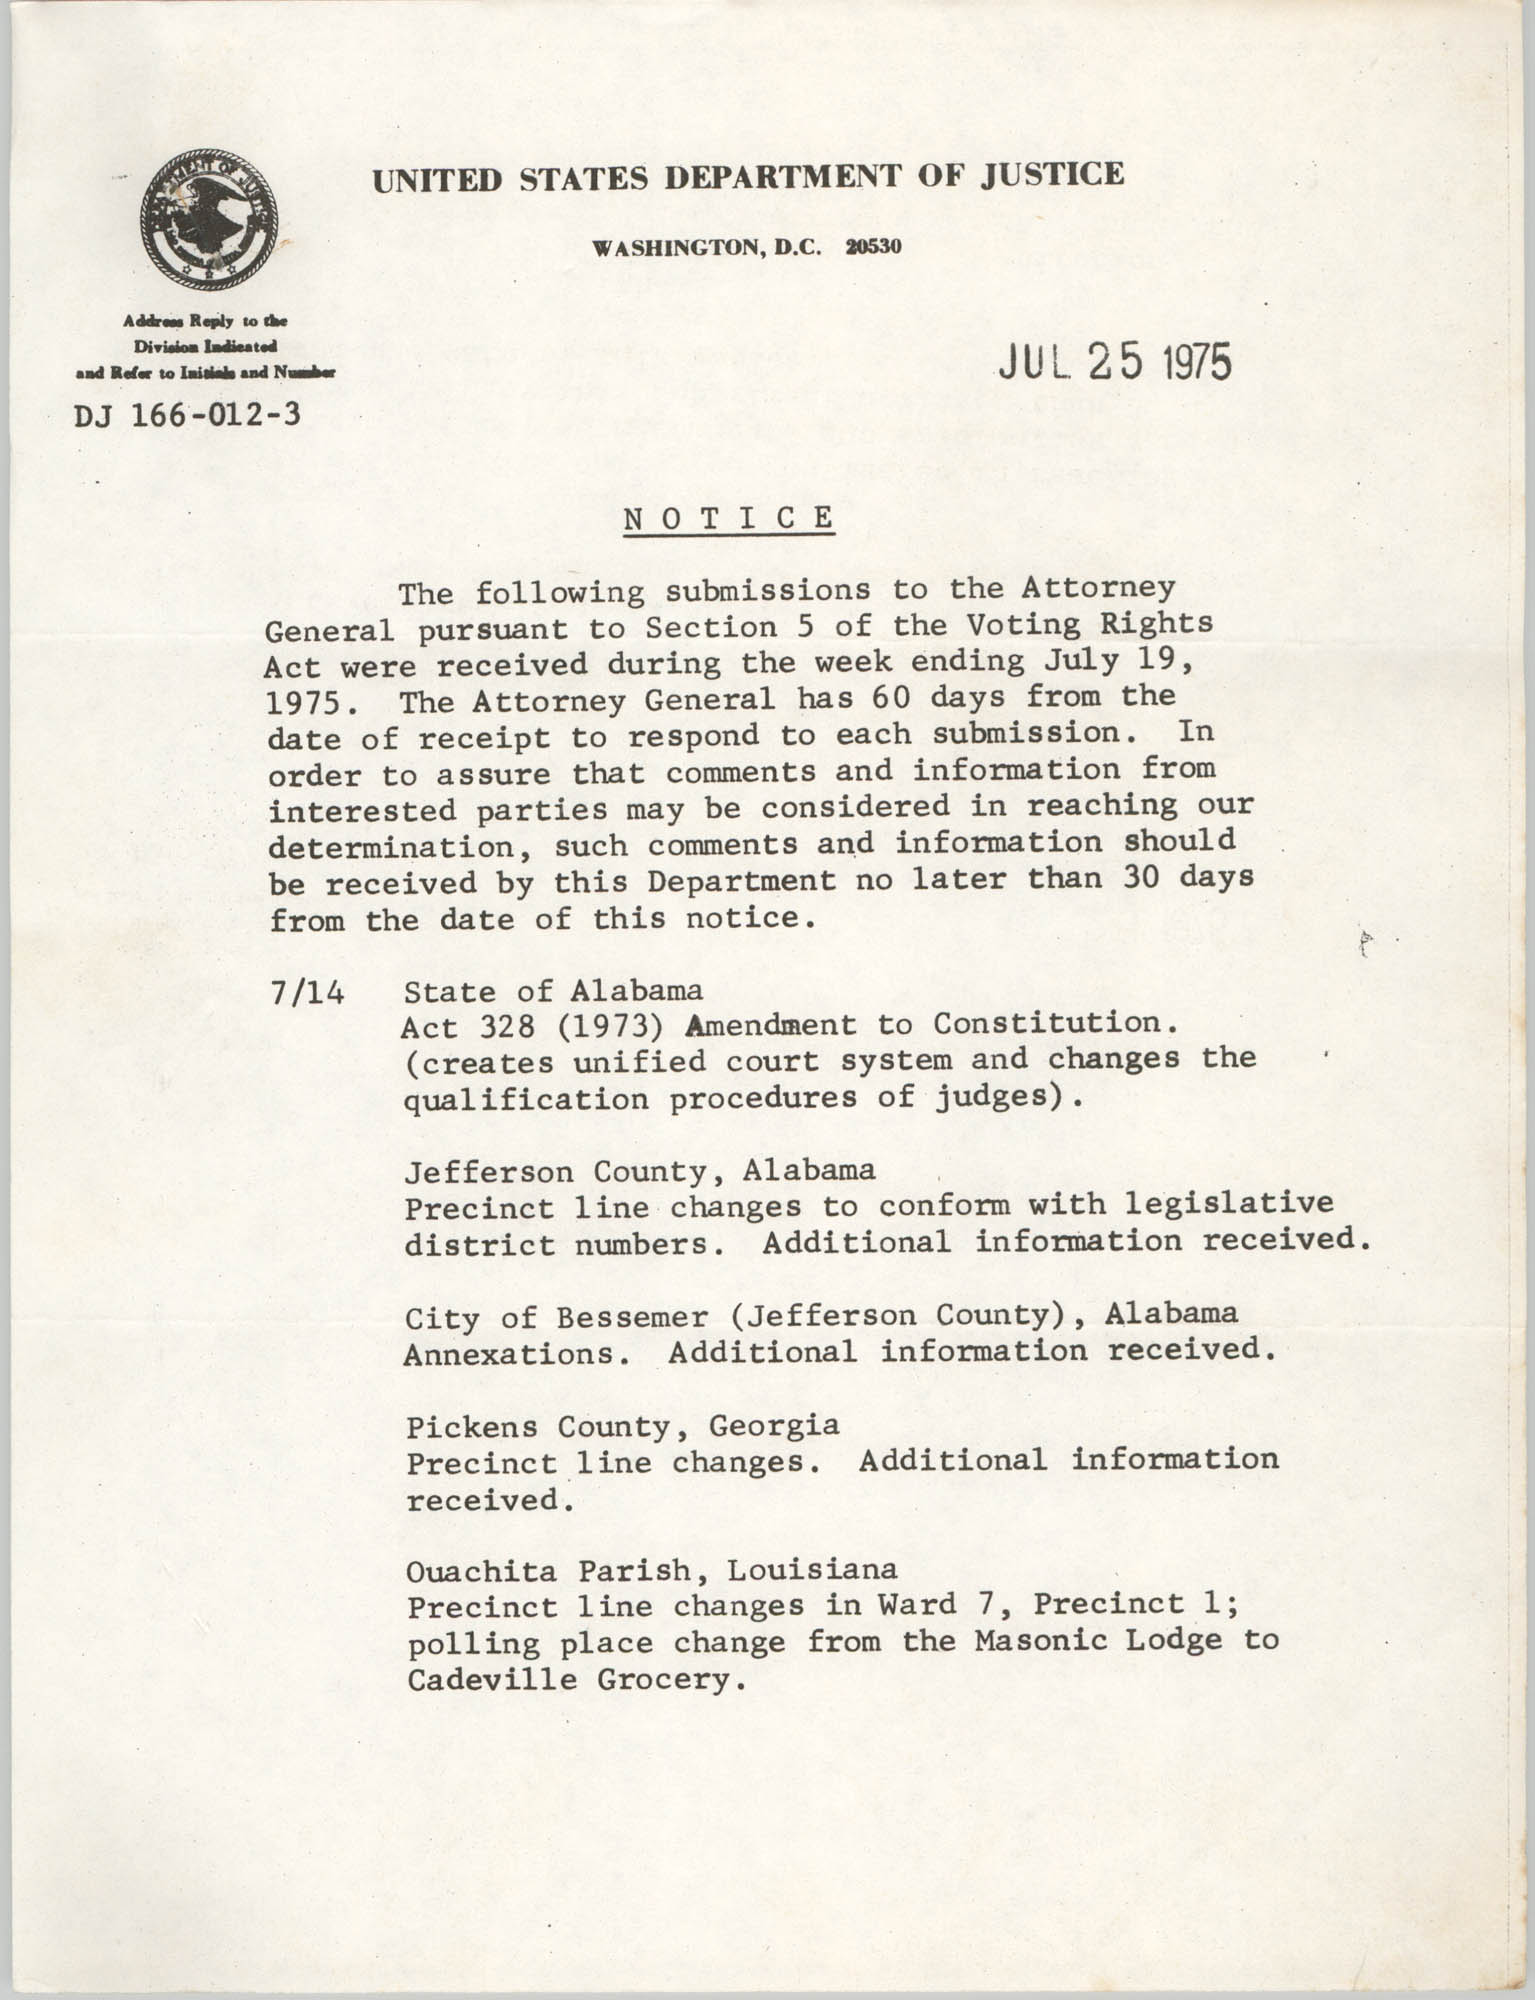 United States Department of Justice Notice, July 25, 1975, Page 1